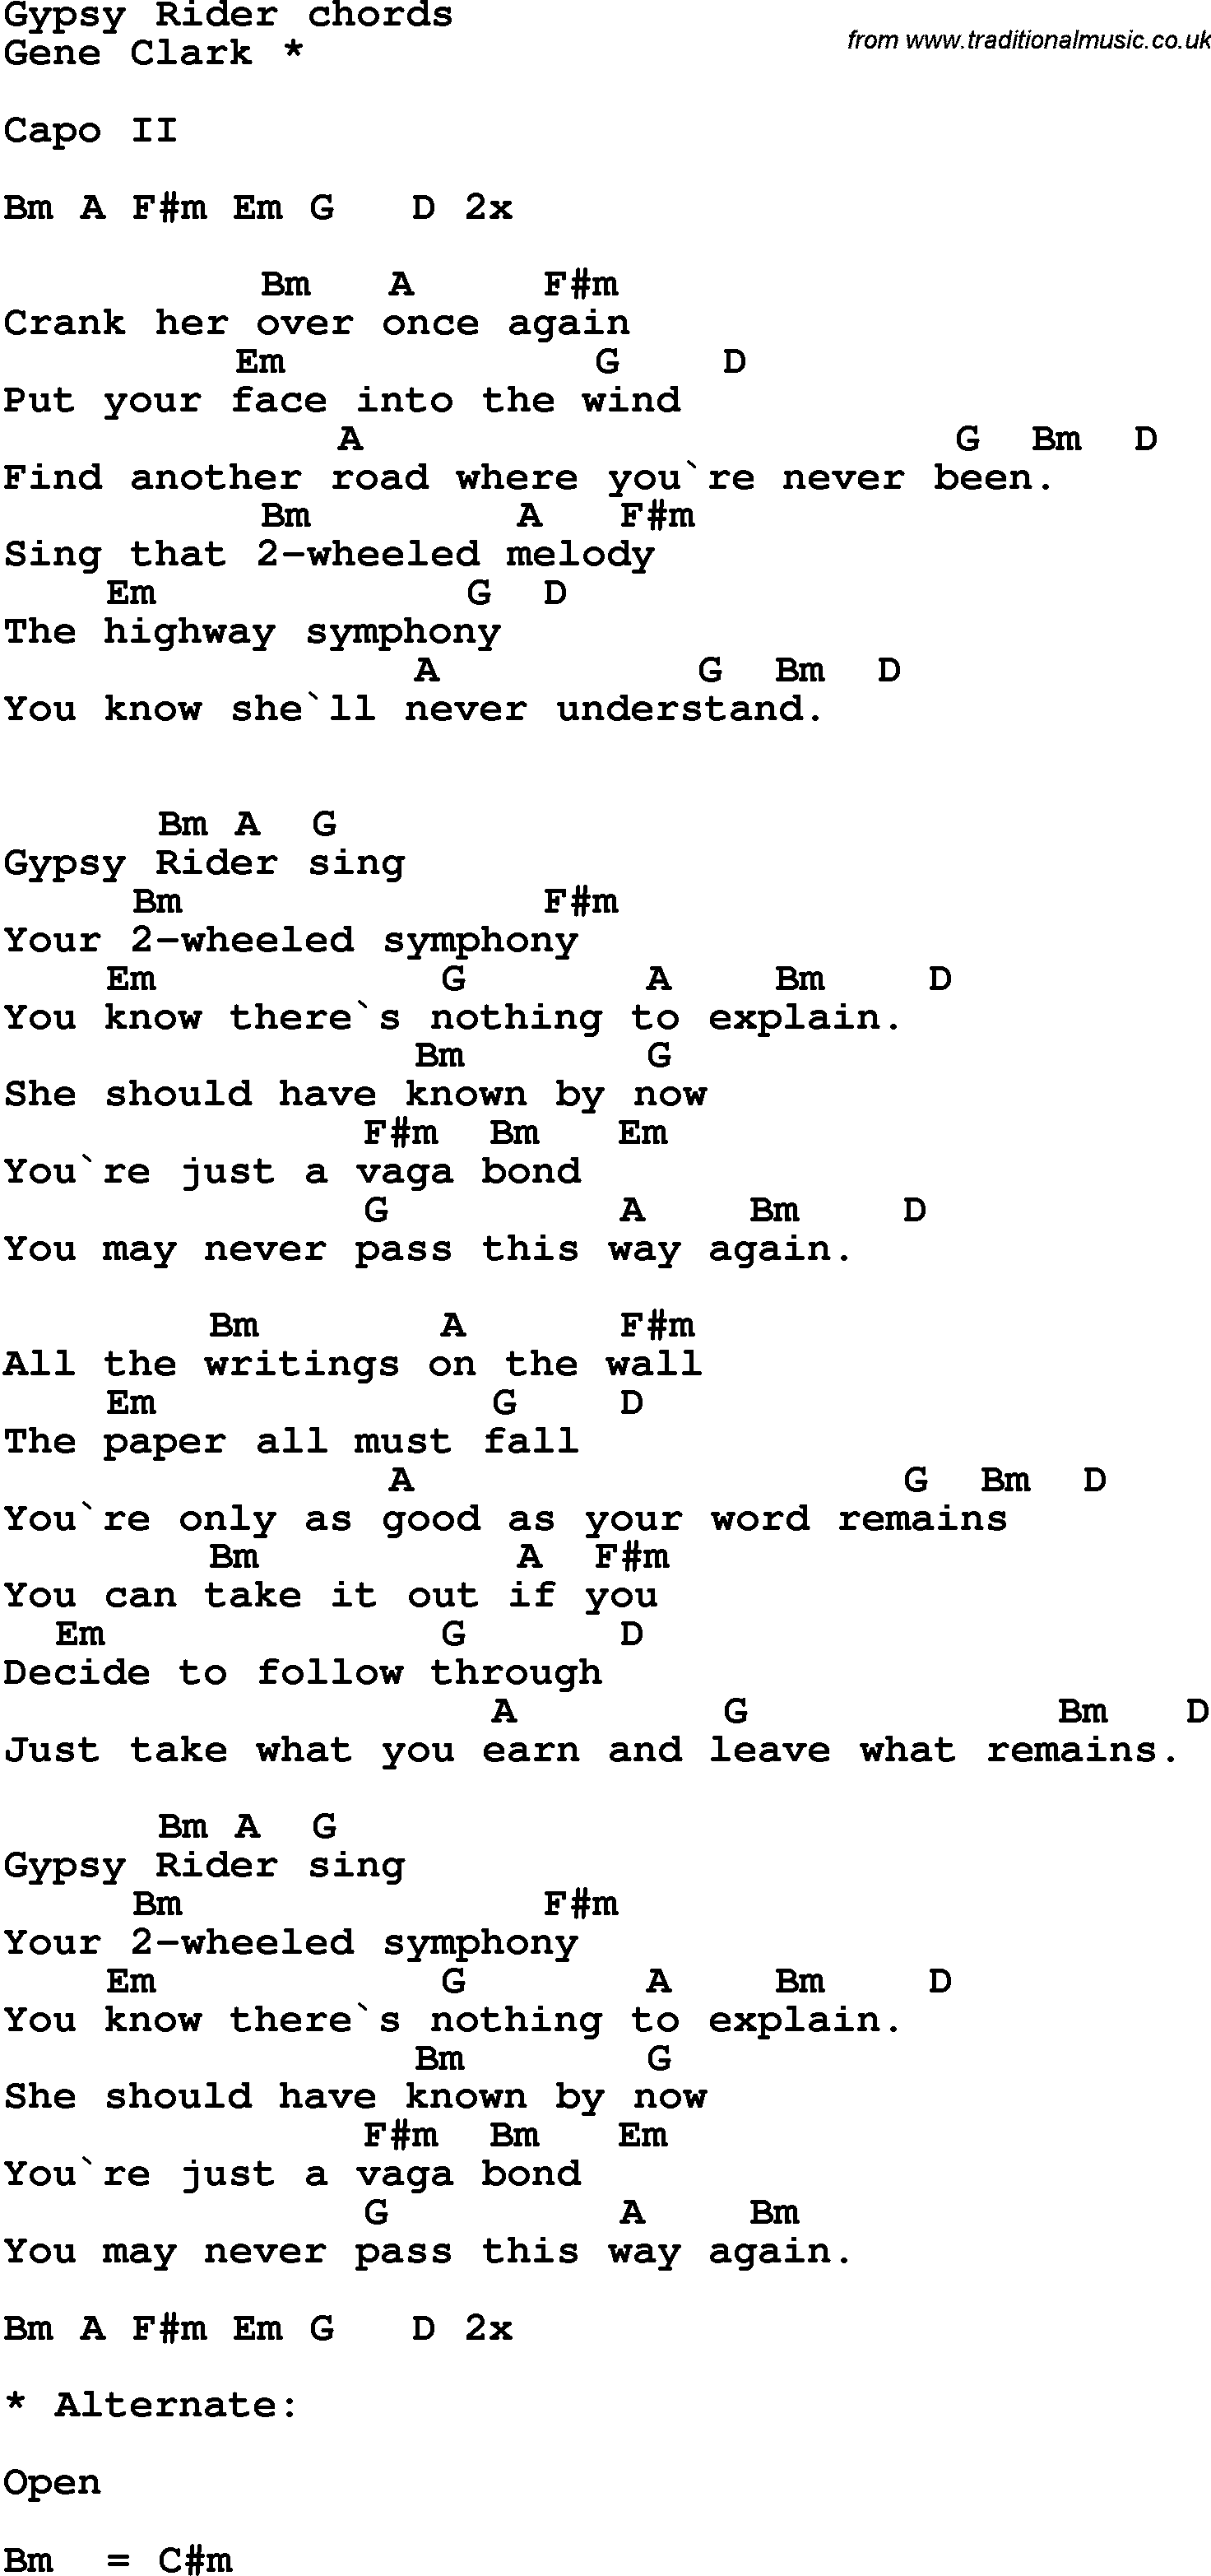 Song Lyrics With Guitar Chords For Gypsy Rider